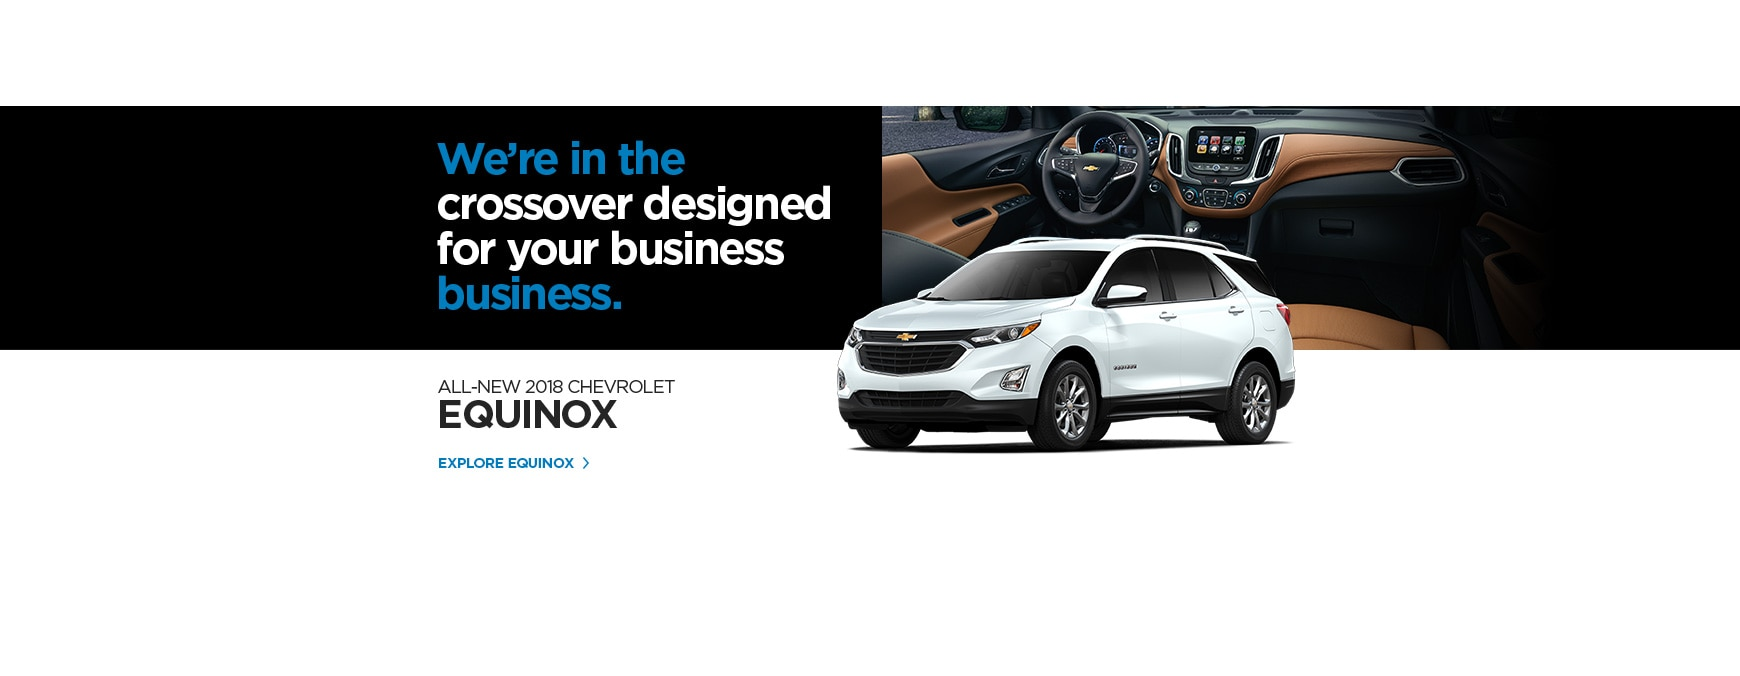 Select the Explore Equinox link to go to the 2018 Chevrolet Equinox page.